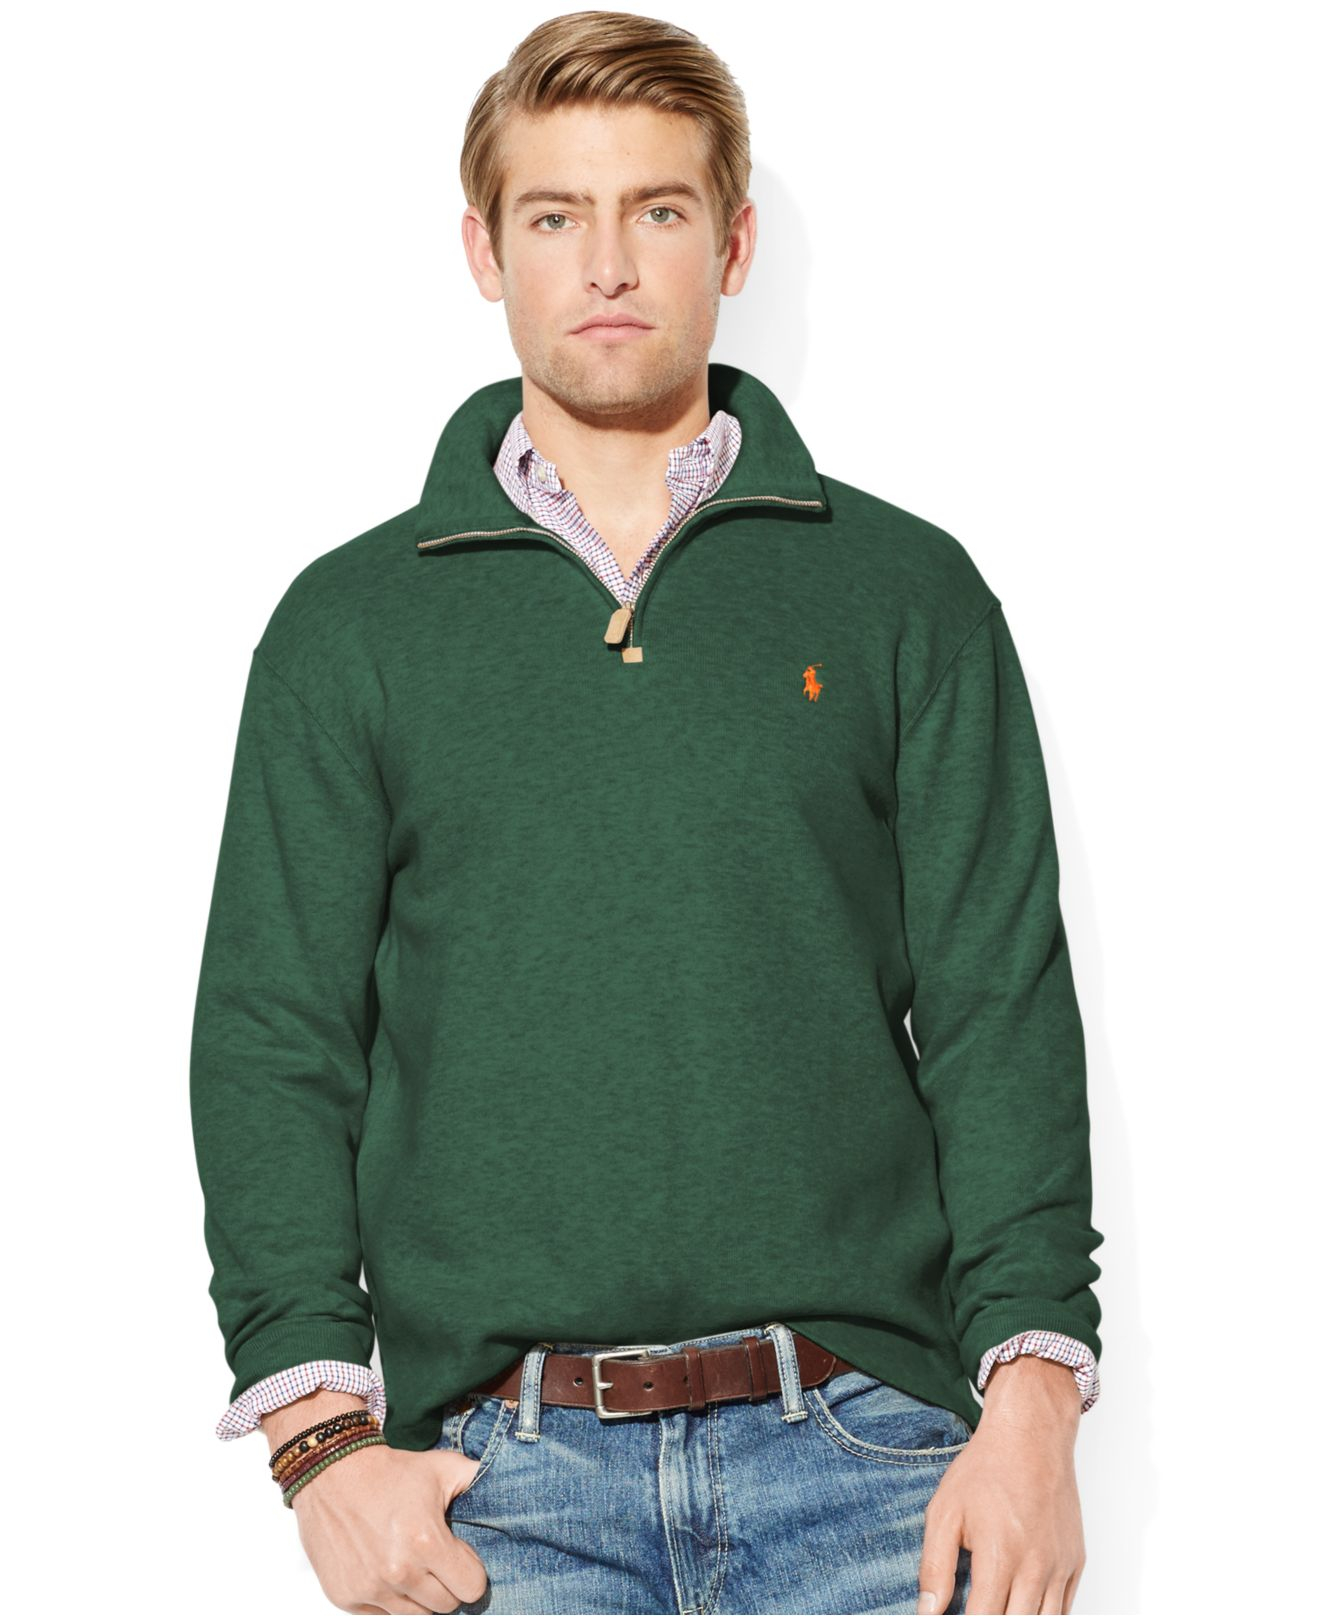 b54f0d766 ... netherlands lyst polo ralph lauren french rib half zip pullover sweater  in caec4 a965d